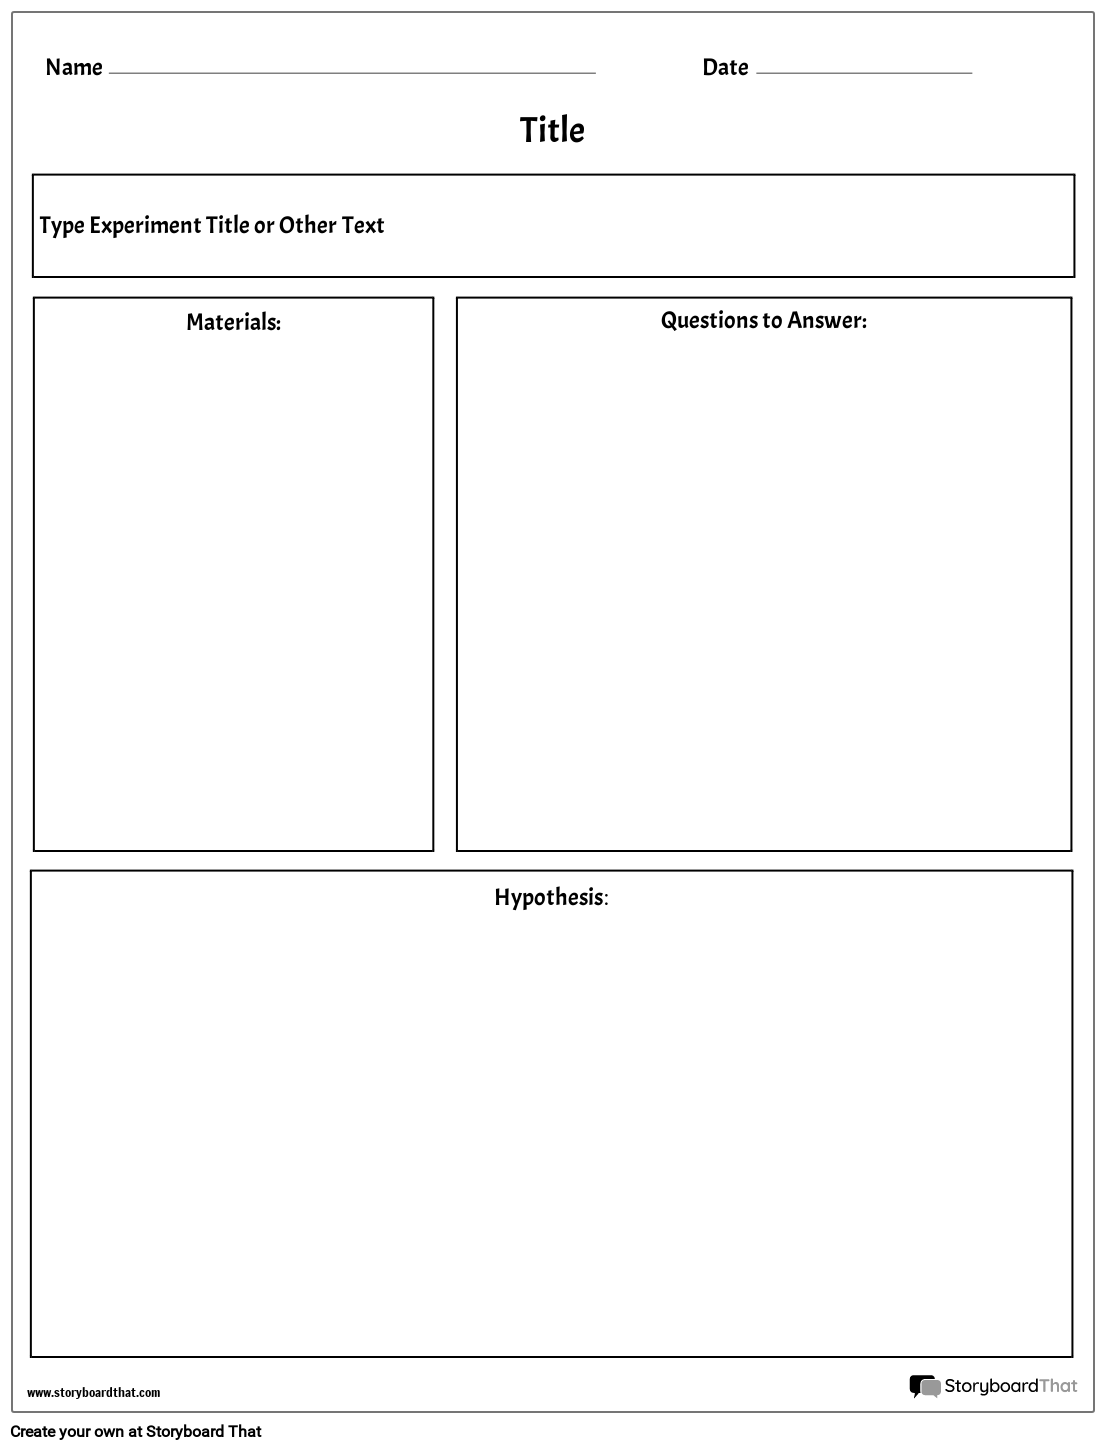 lab report worksheet custom science worksheets. Black Bedroom Furniture Sets. Home Design Ideas